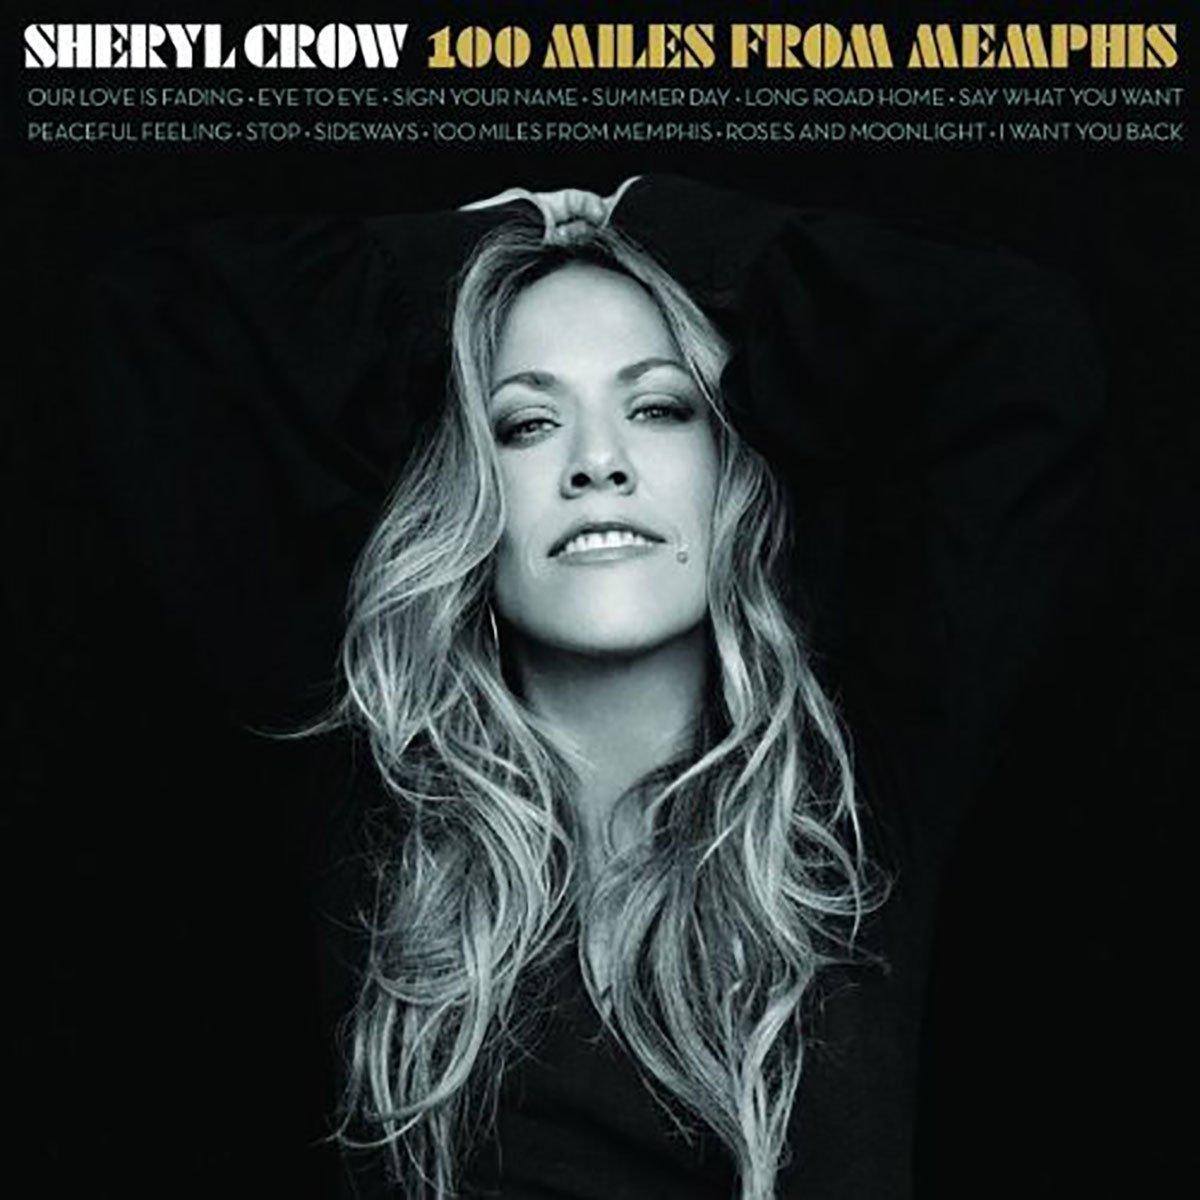 Sheryl Crow, 100 Miles from Memphis